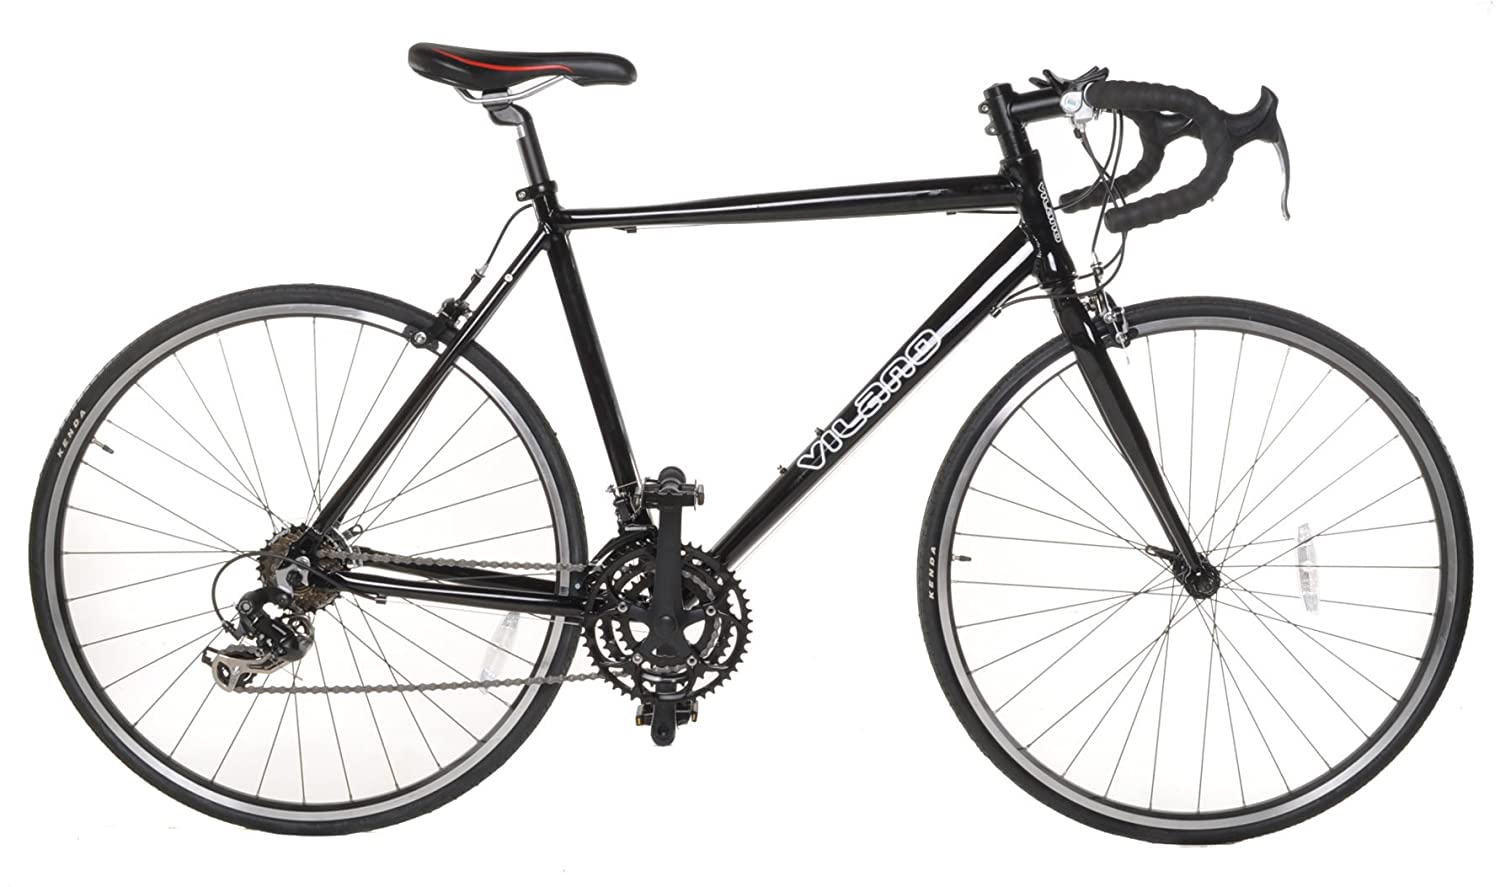 Vilano Aluminum Road Bike 21 Speed Shimano 1